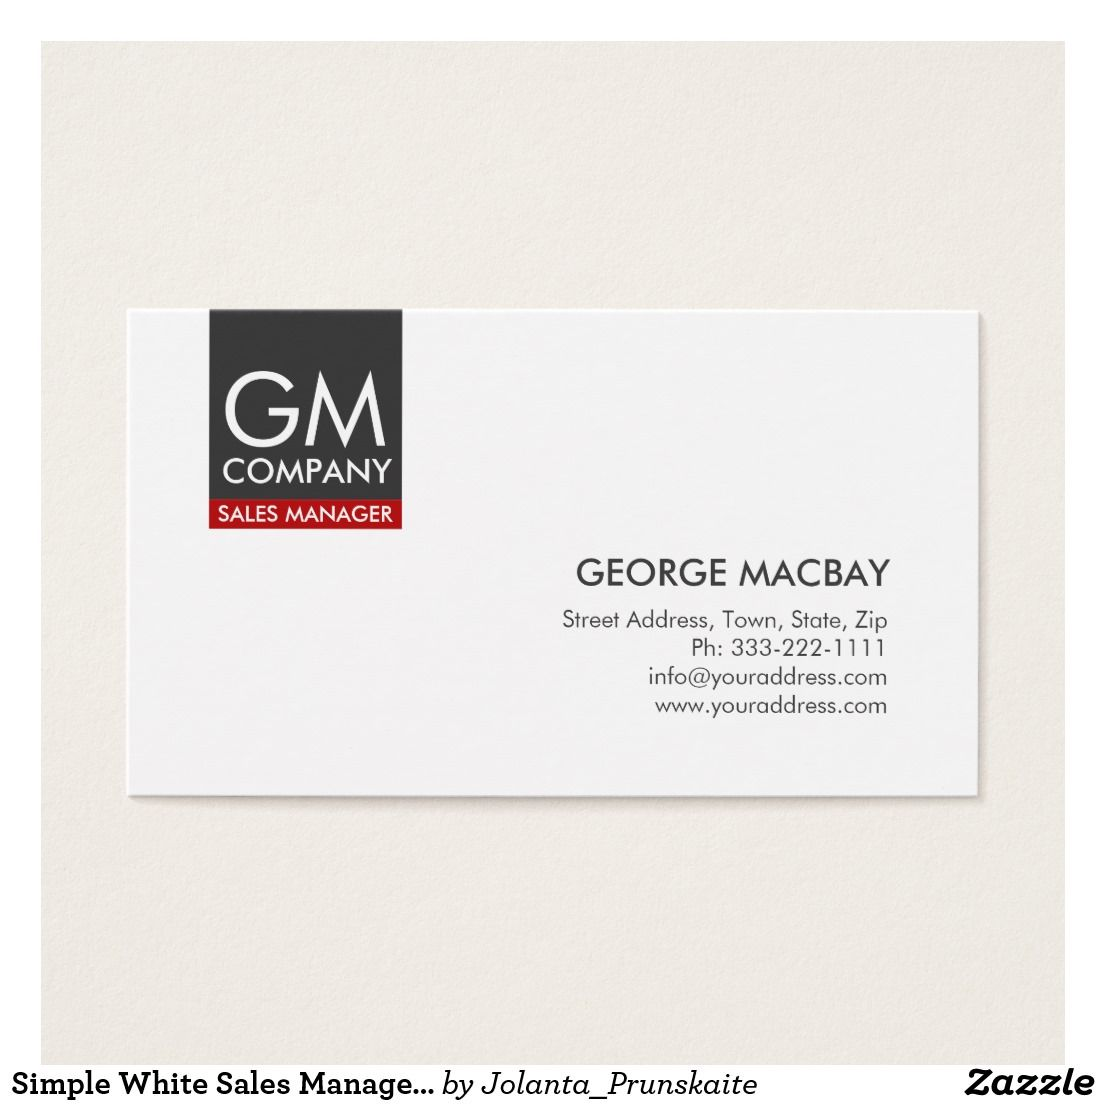 Simple White Sales Manager Monogram Business Card Zazzle Com Sales Manager Business Cards Business